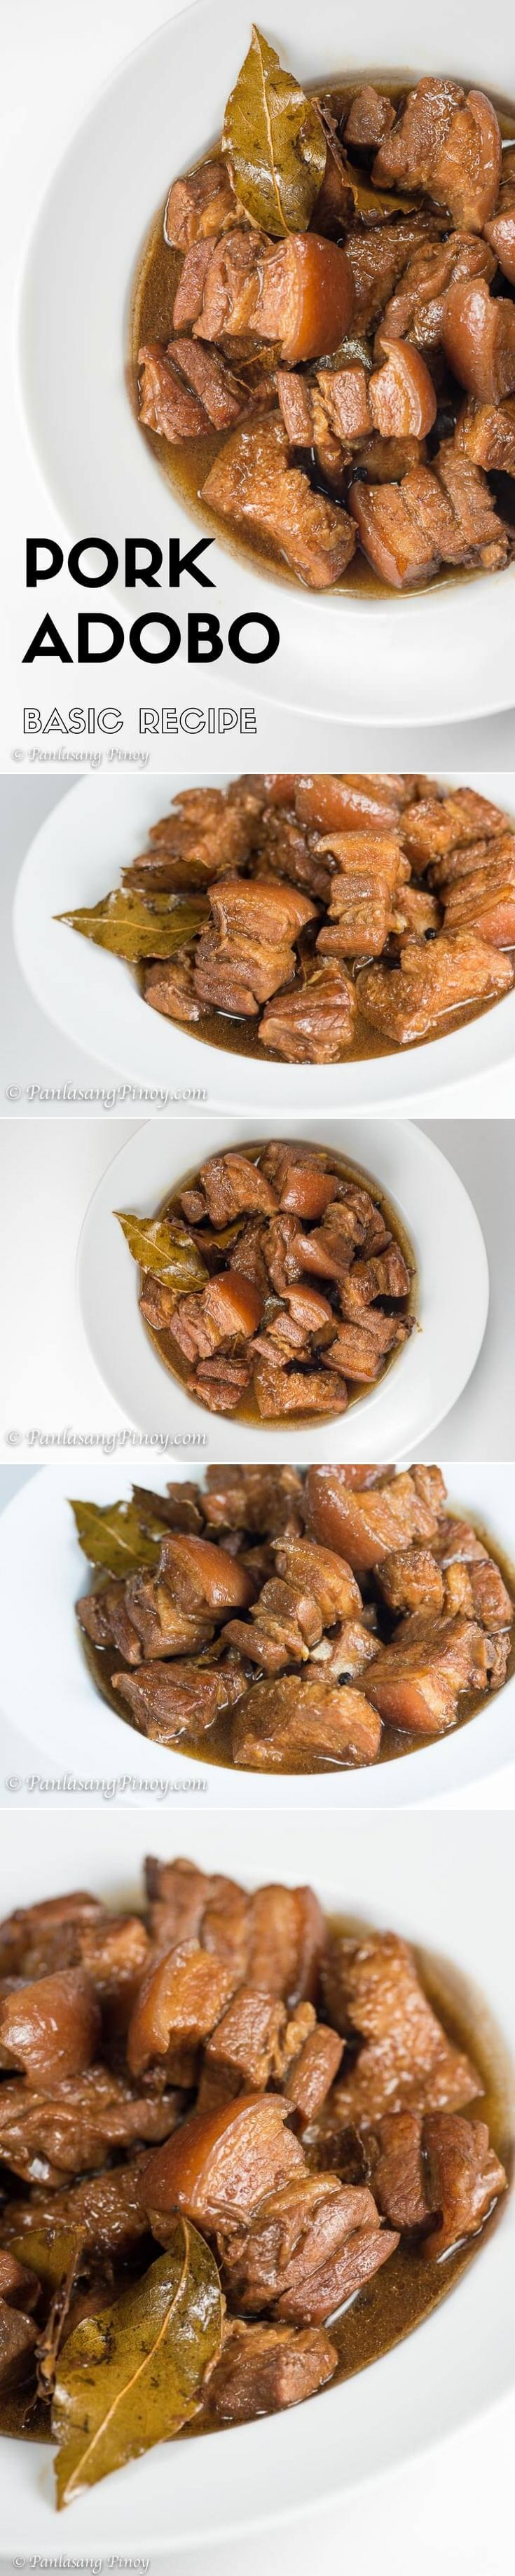 Best 25 filipino recipes ideas on pinterest filipino food basic pork adobo asian food recipesfilipino forumfinder Gallery